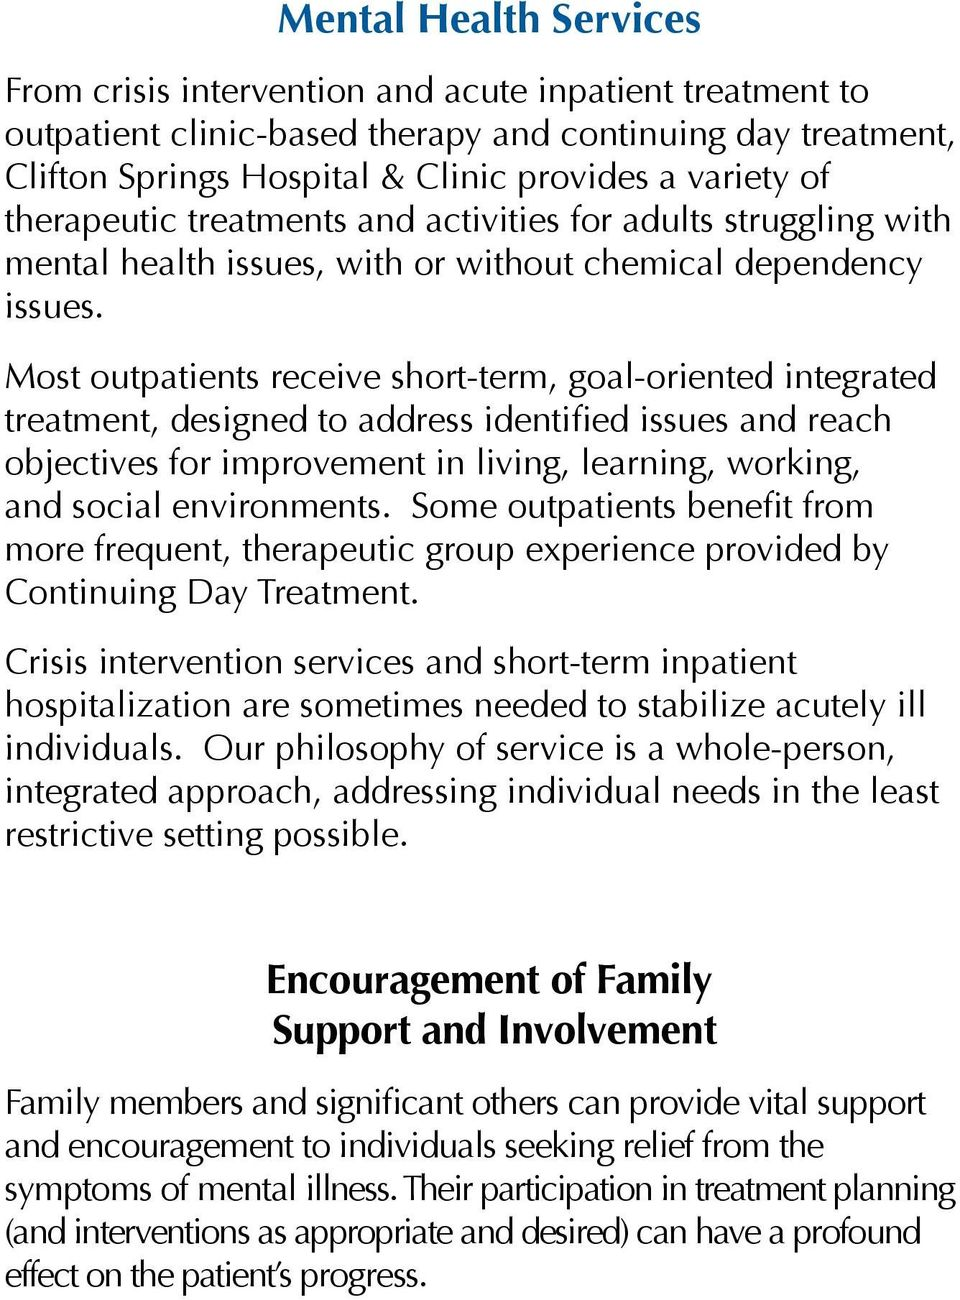 Clifton Springs Hospital Clinic Behavioral Health Inpatient